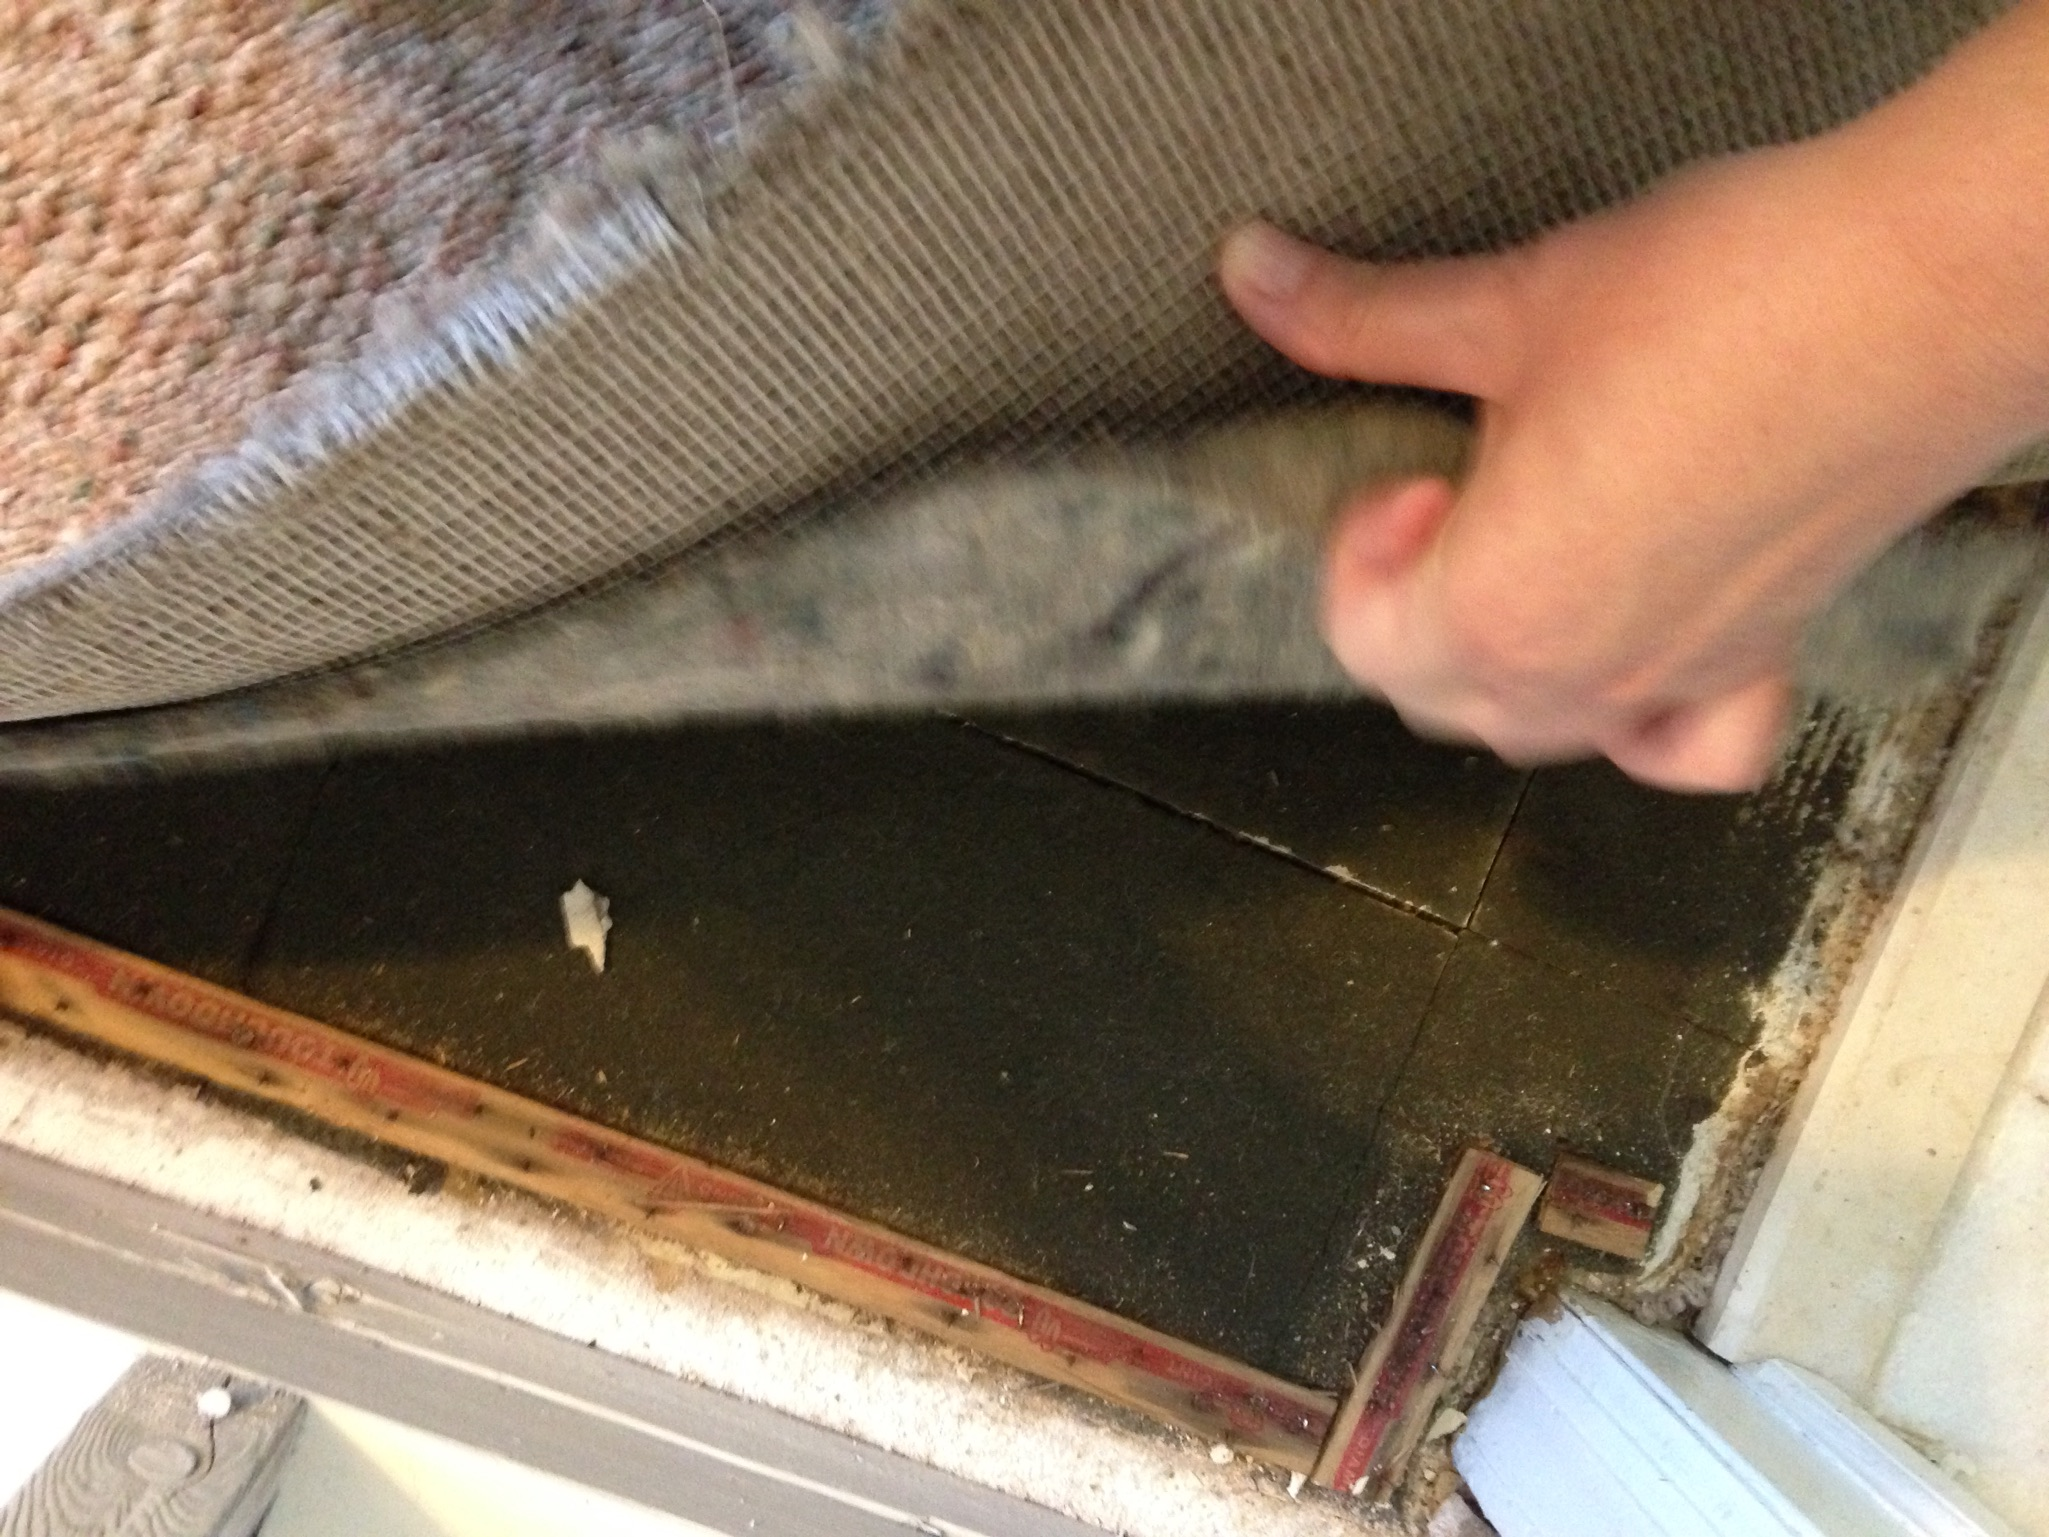 What Is This Under Carpet Hope House Asbestos